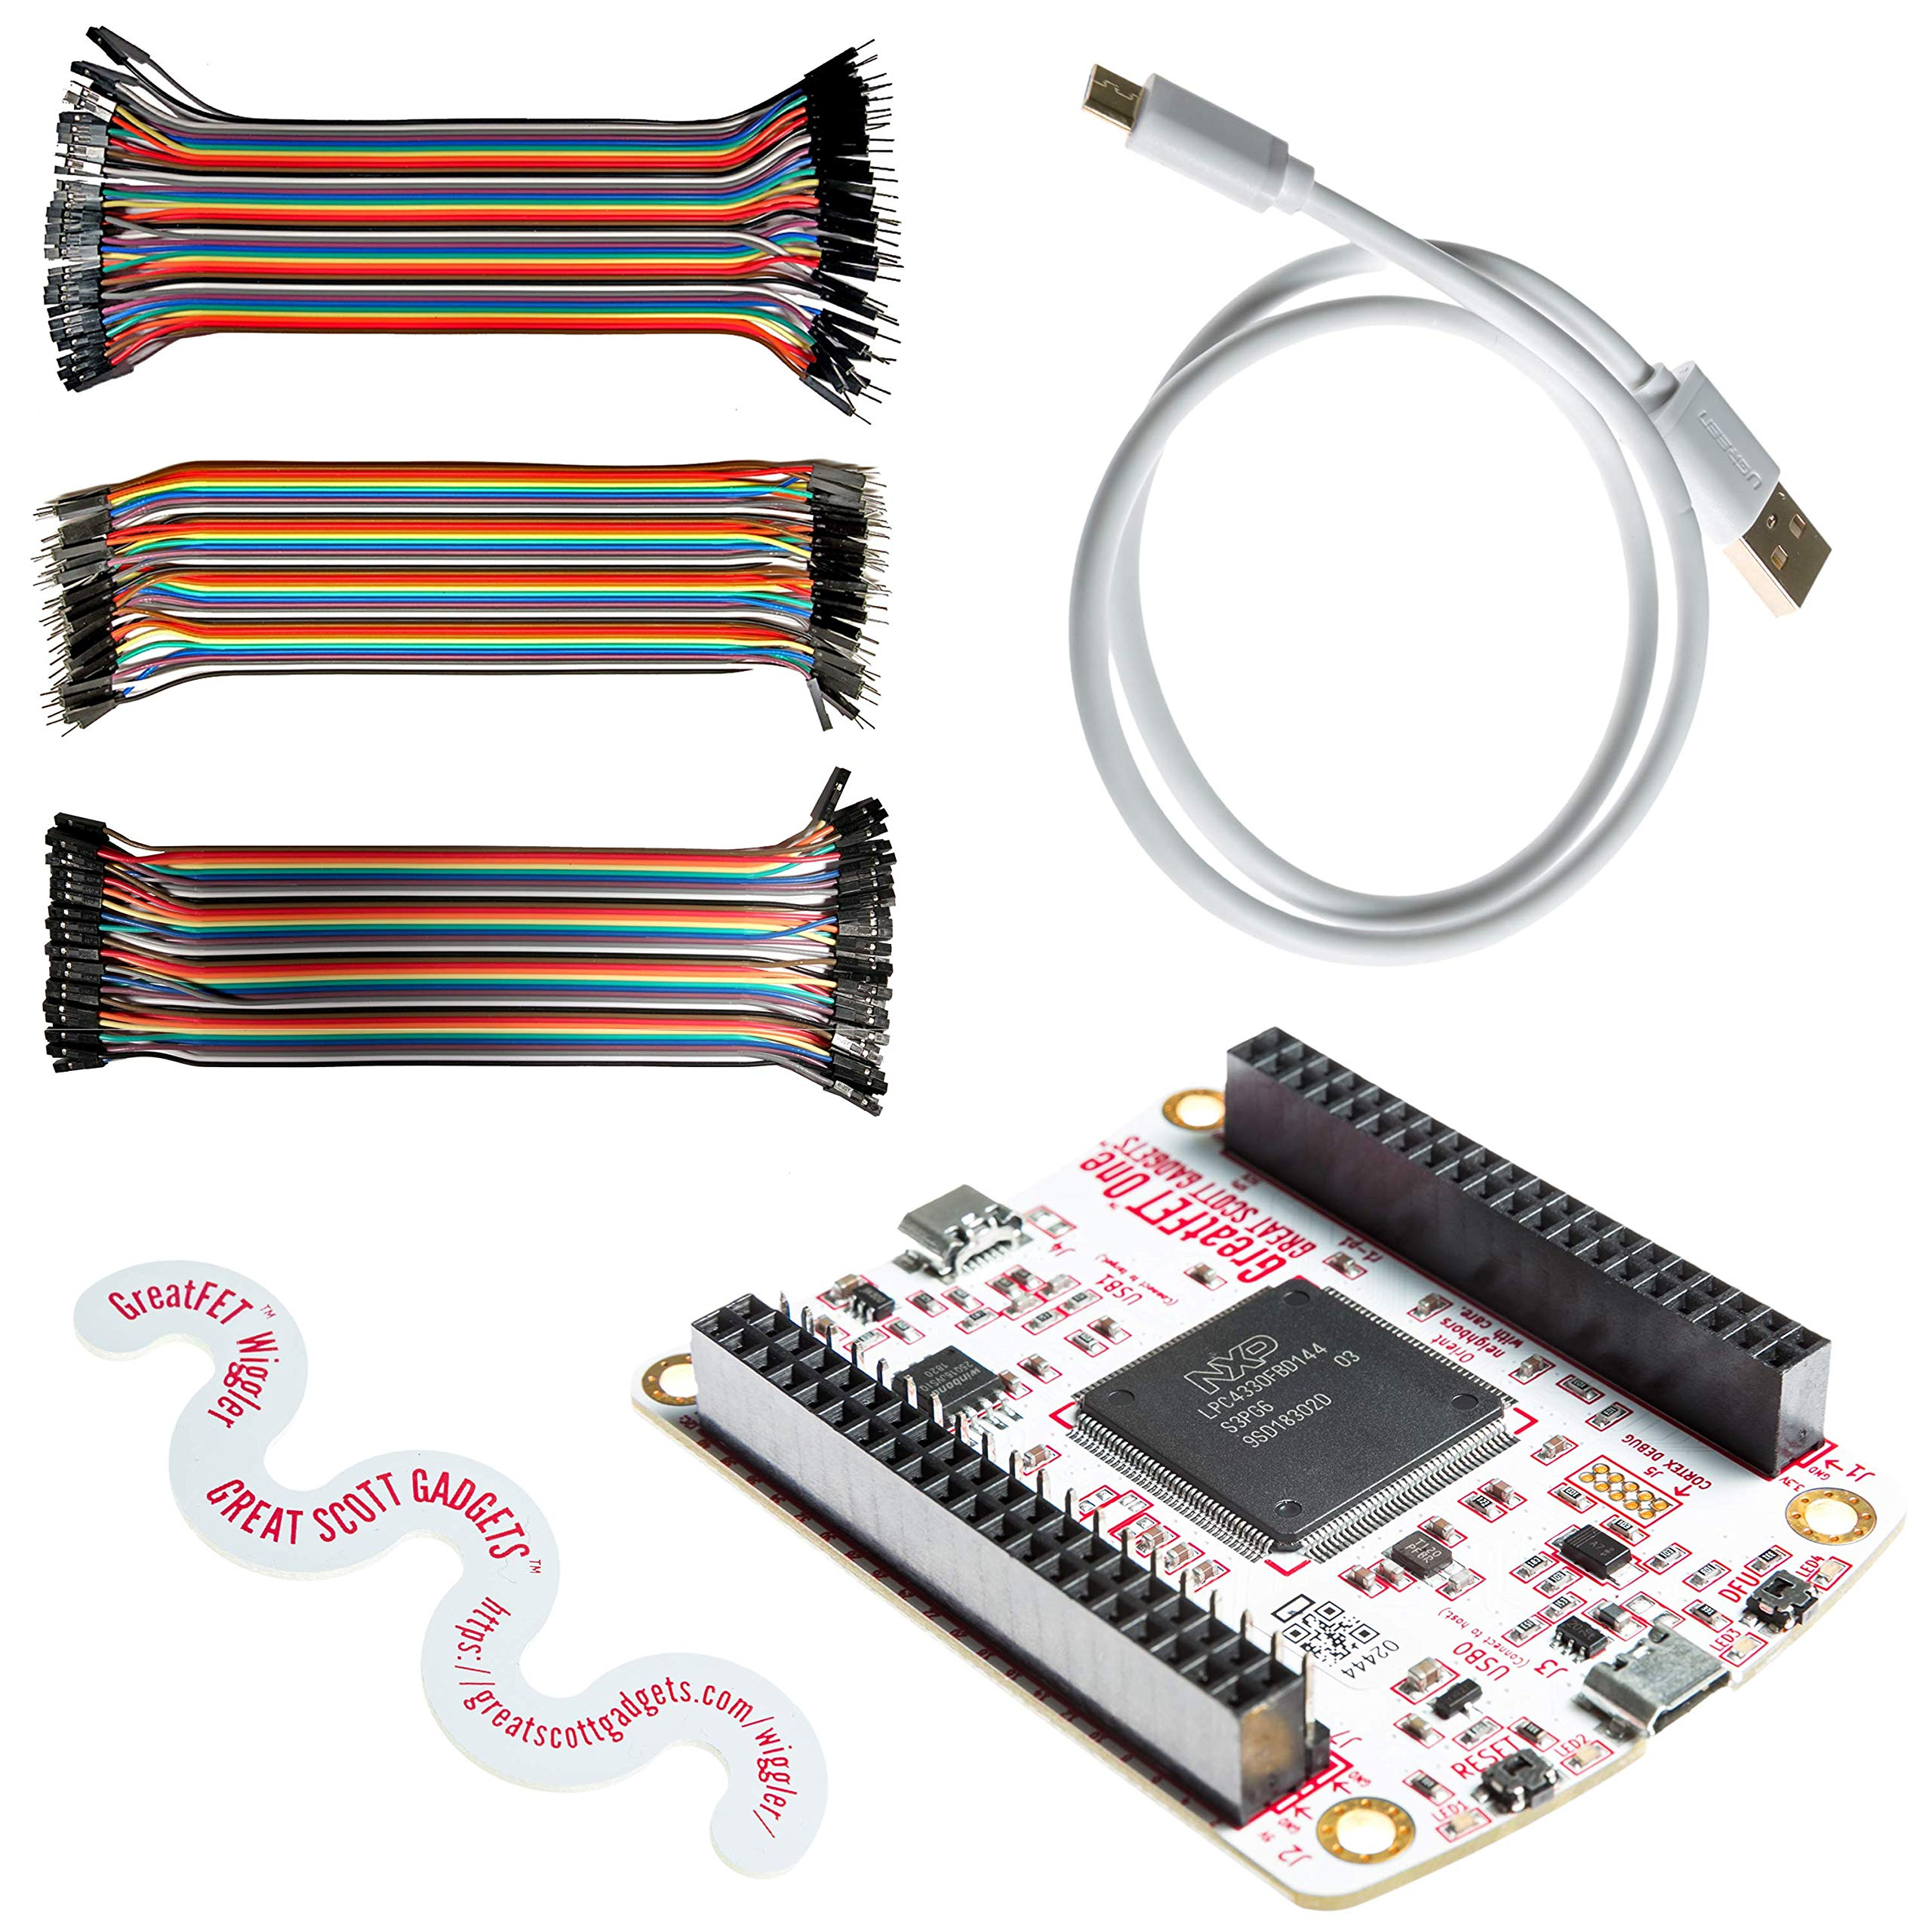 NooElec Great Scott Gadgets GreatFET One Bundle - Hi-Speed USB Peripheral, Logic Analyzer, Debugger and Development Board. Open Hardware. Includes GreatFET One, Wiggler, Cable & 120 Prototyping Wires by NooElec